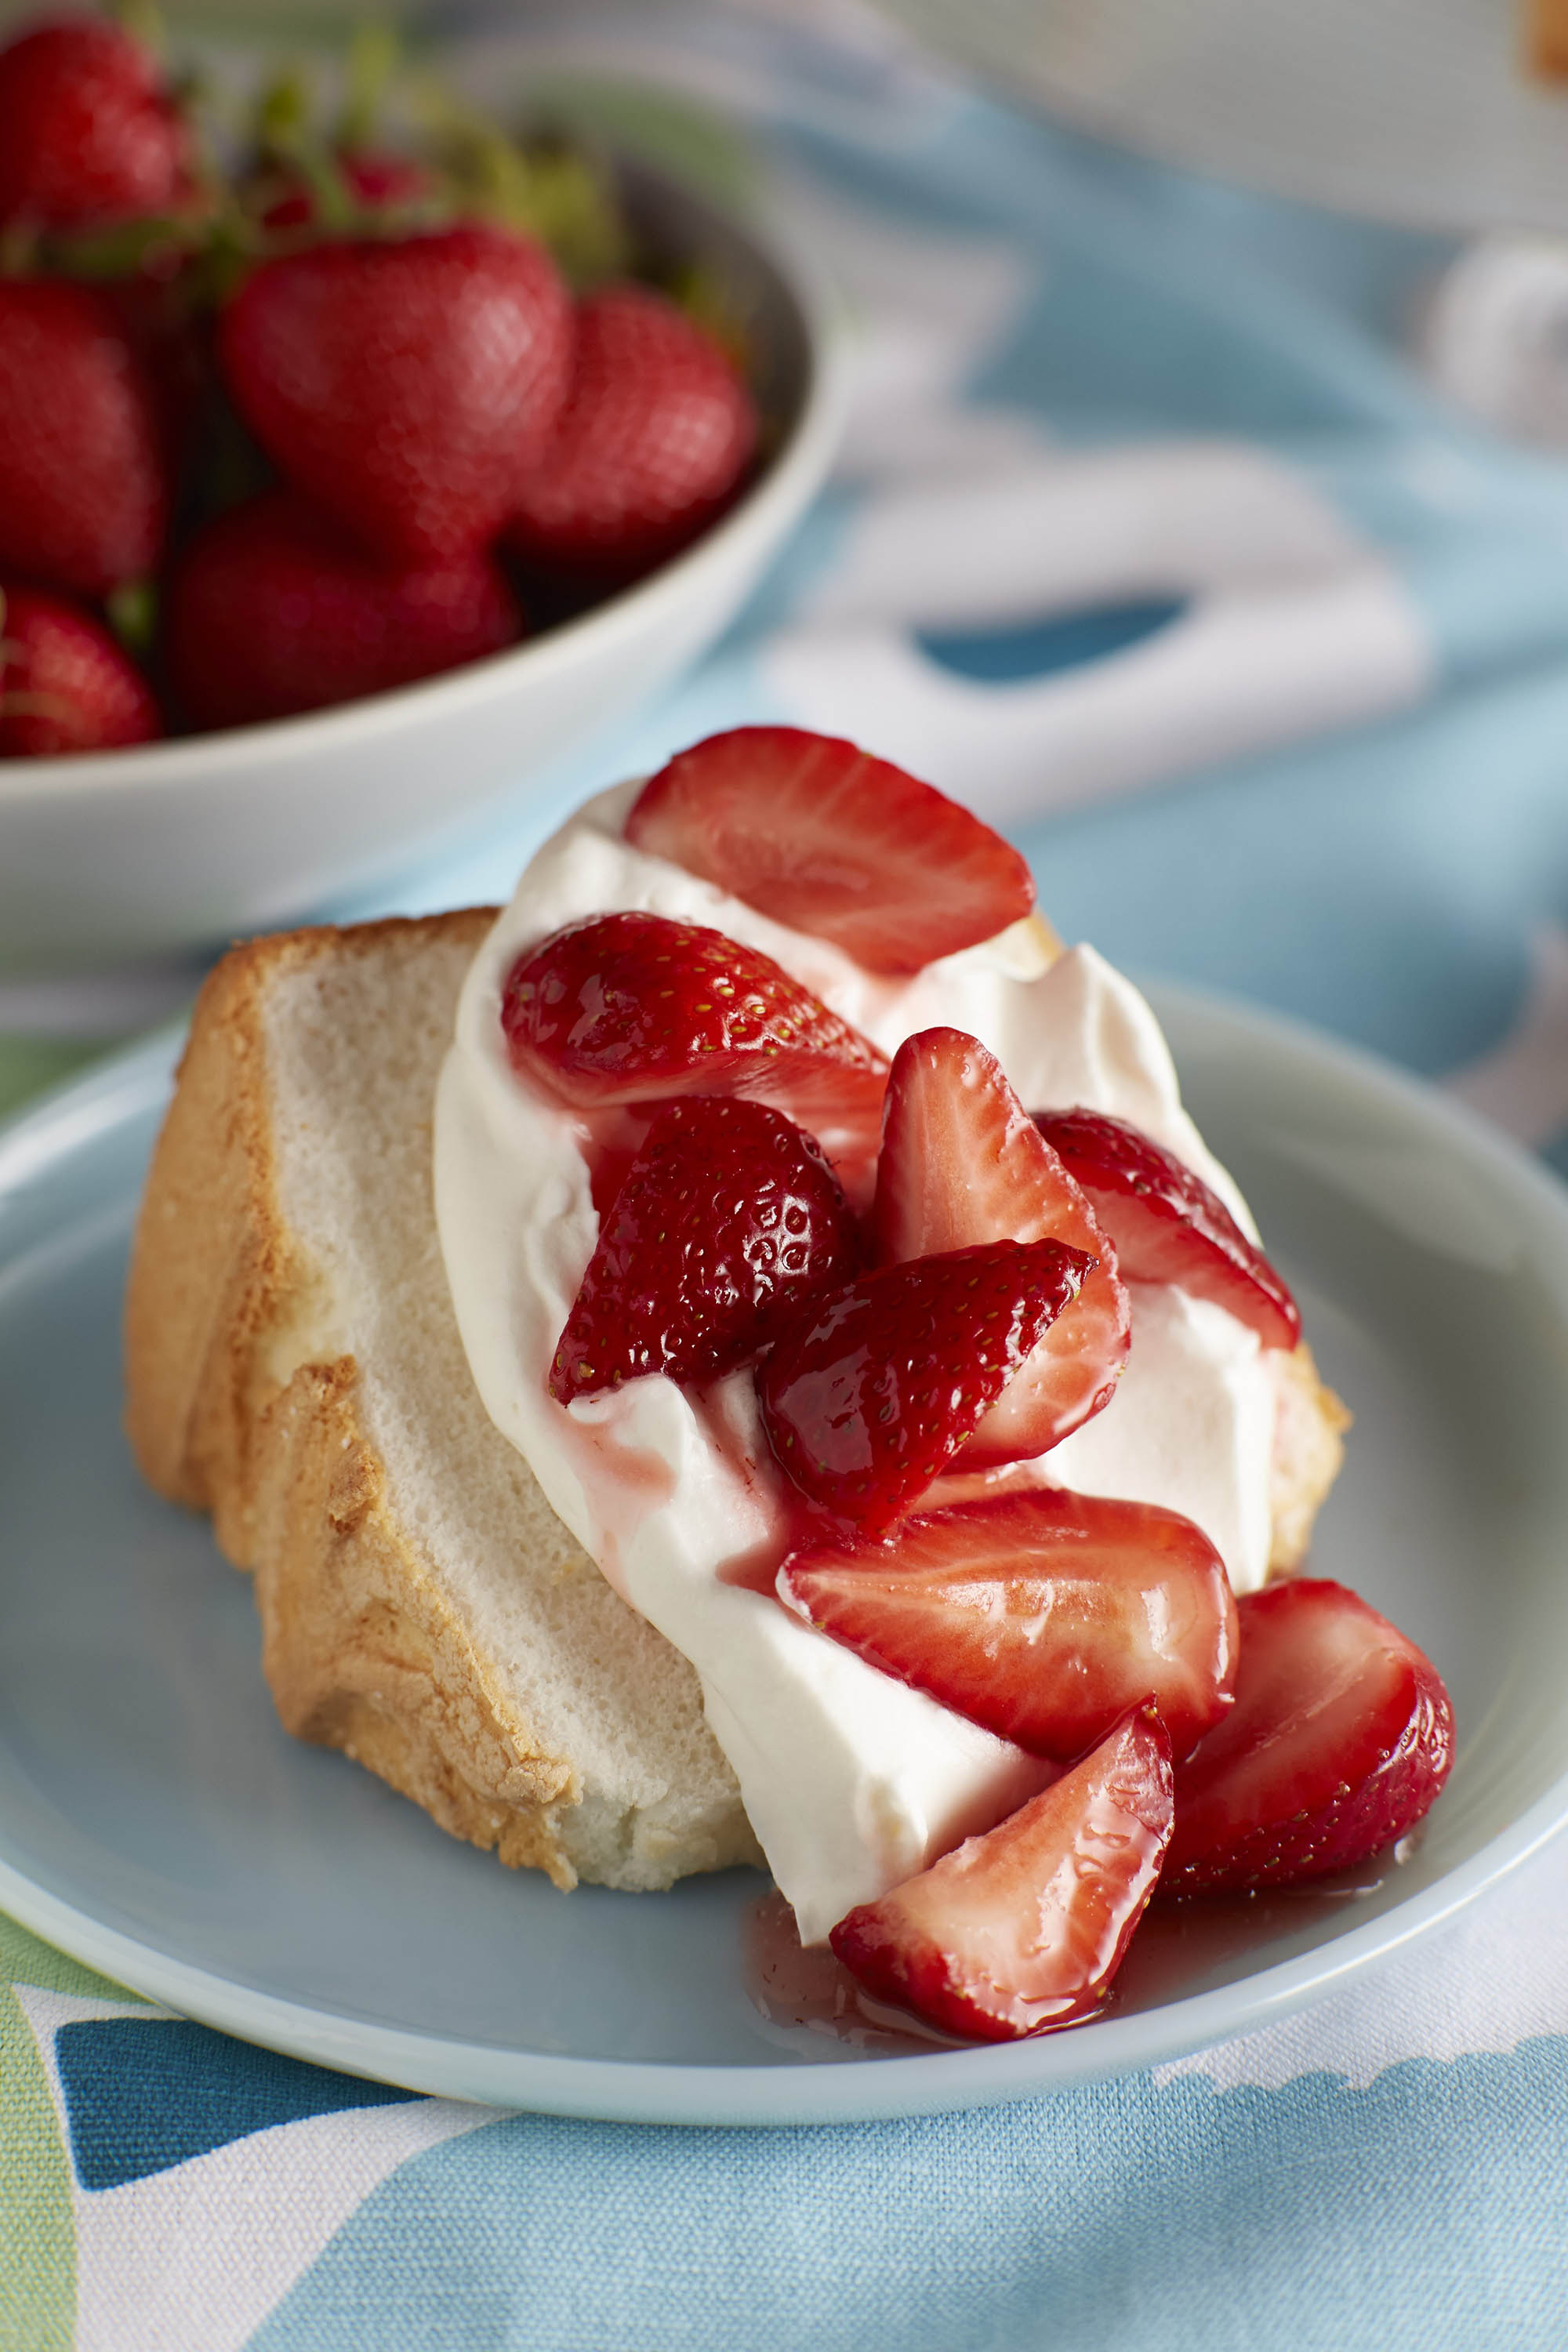 Strawberry Cake Made With Frozen Strawberries